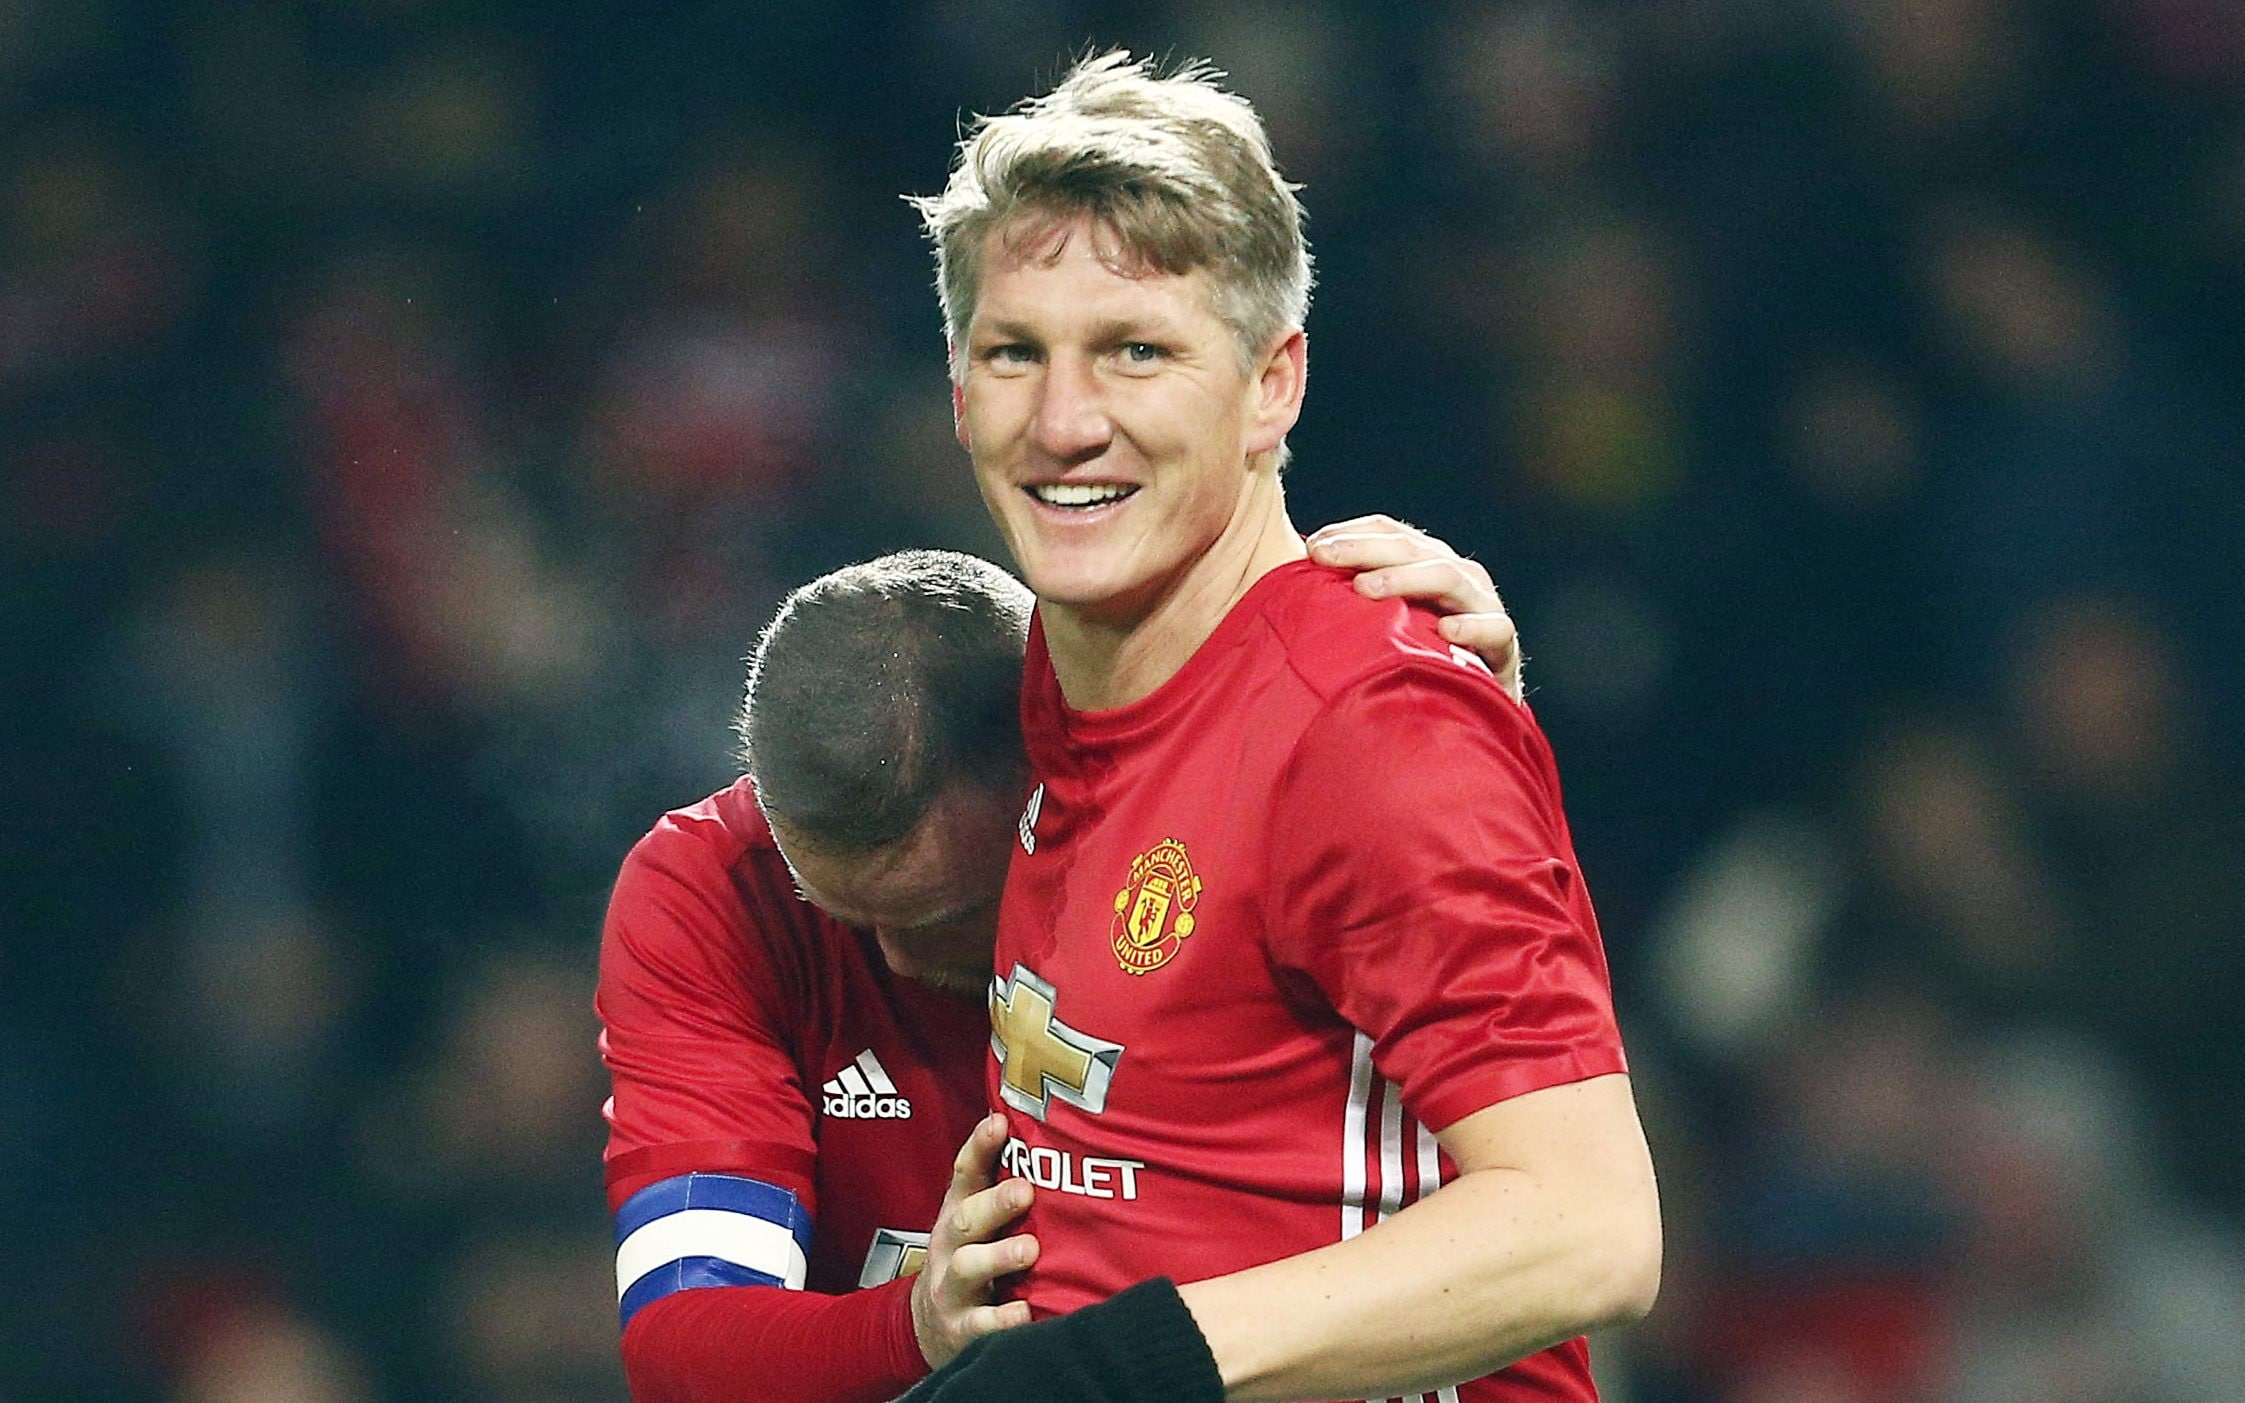 Bastian Schweinsteiger Can Stay At Man Utd Says Jose Mourinho